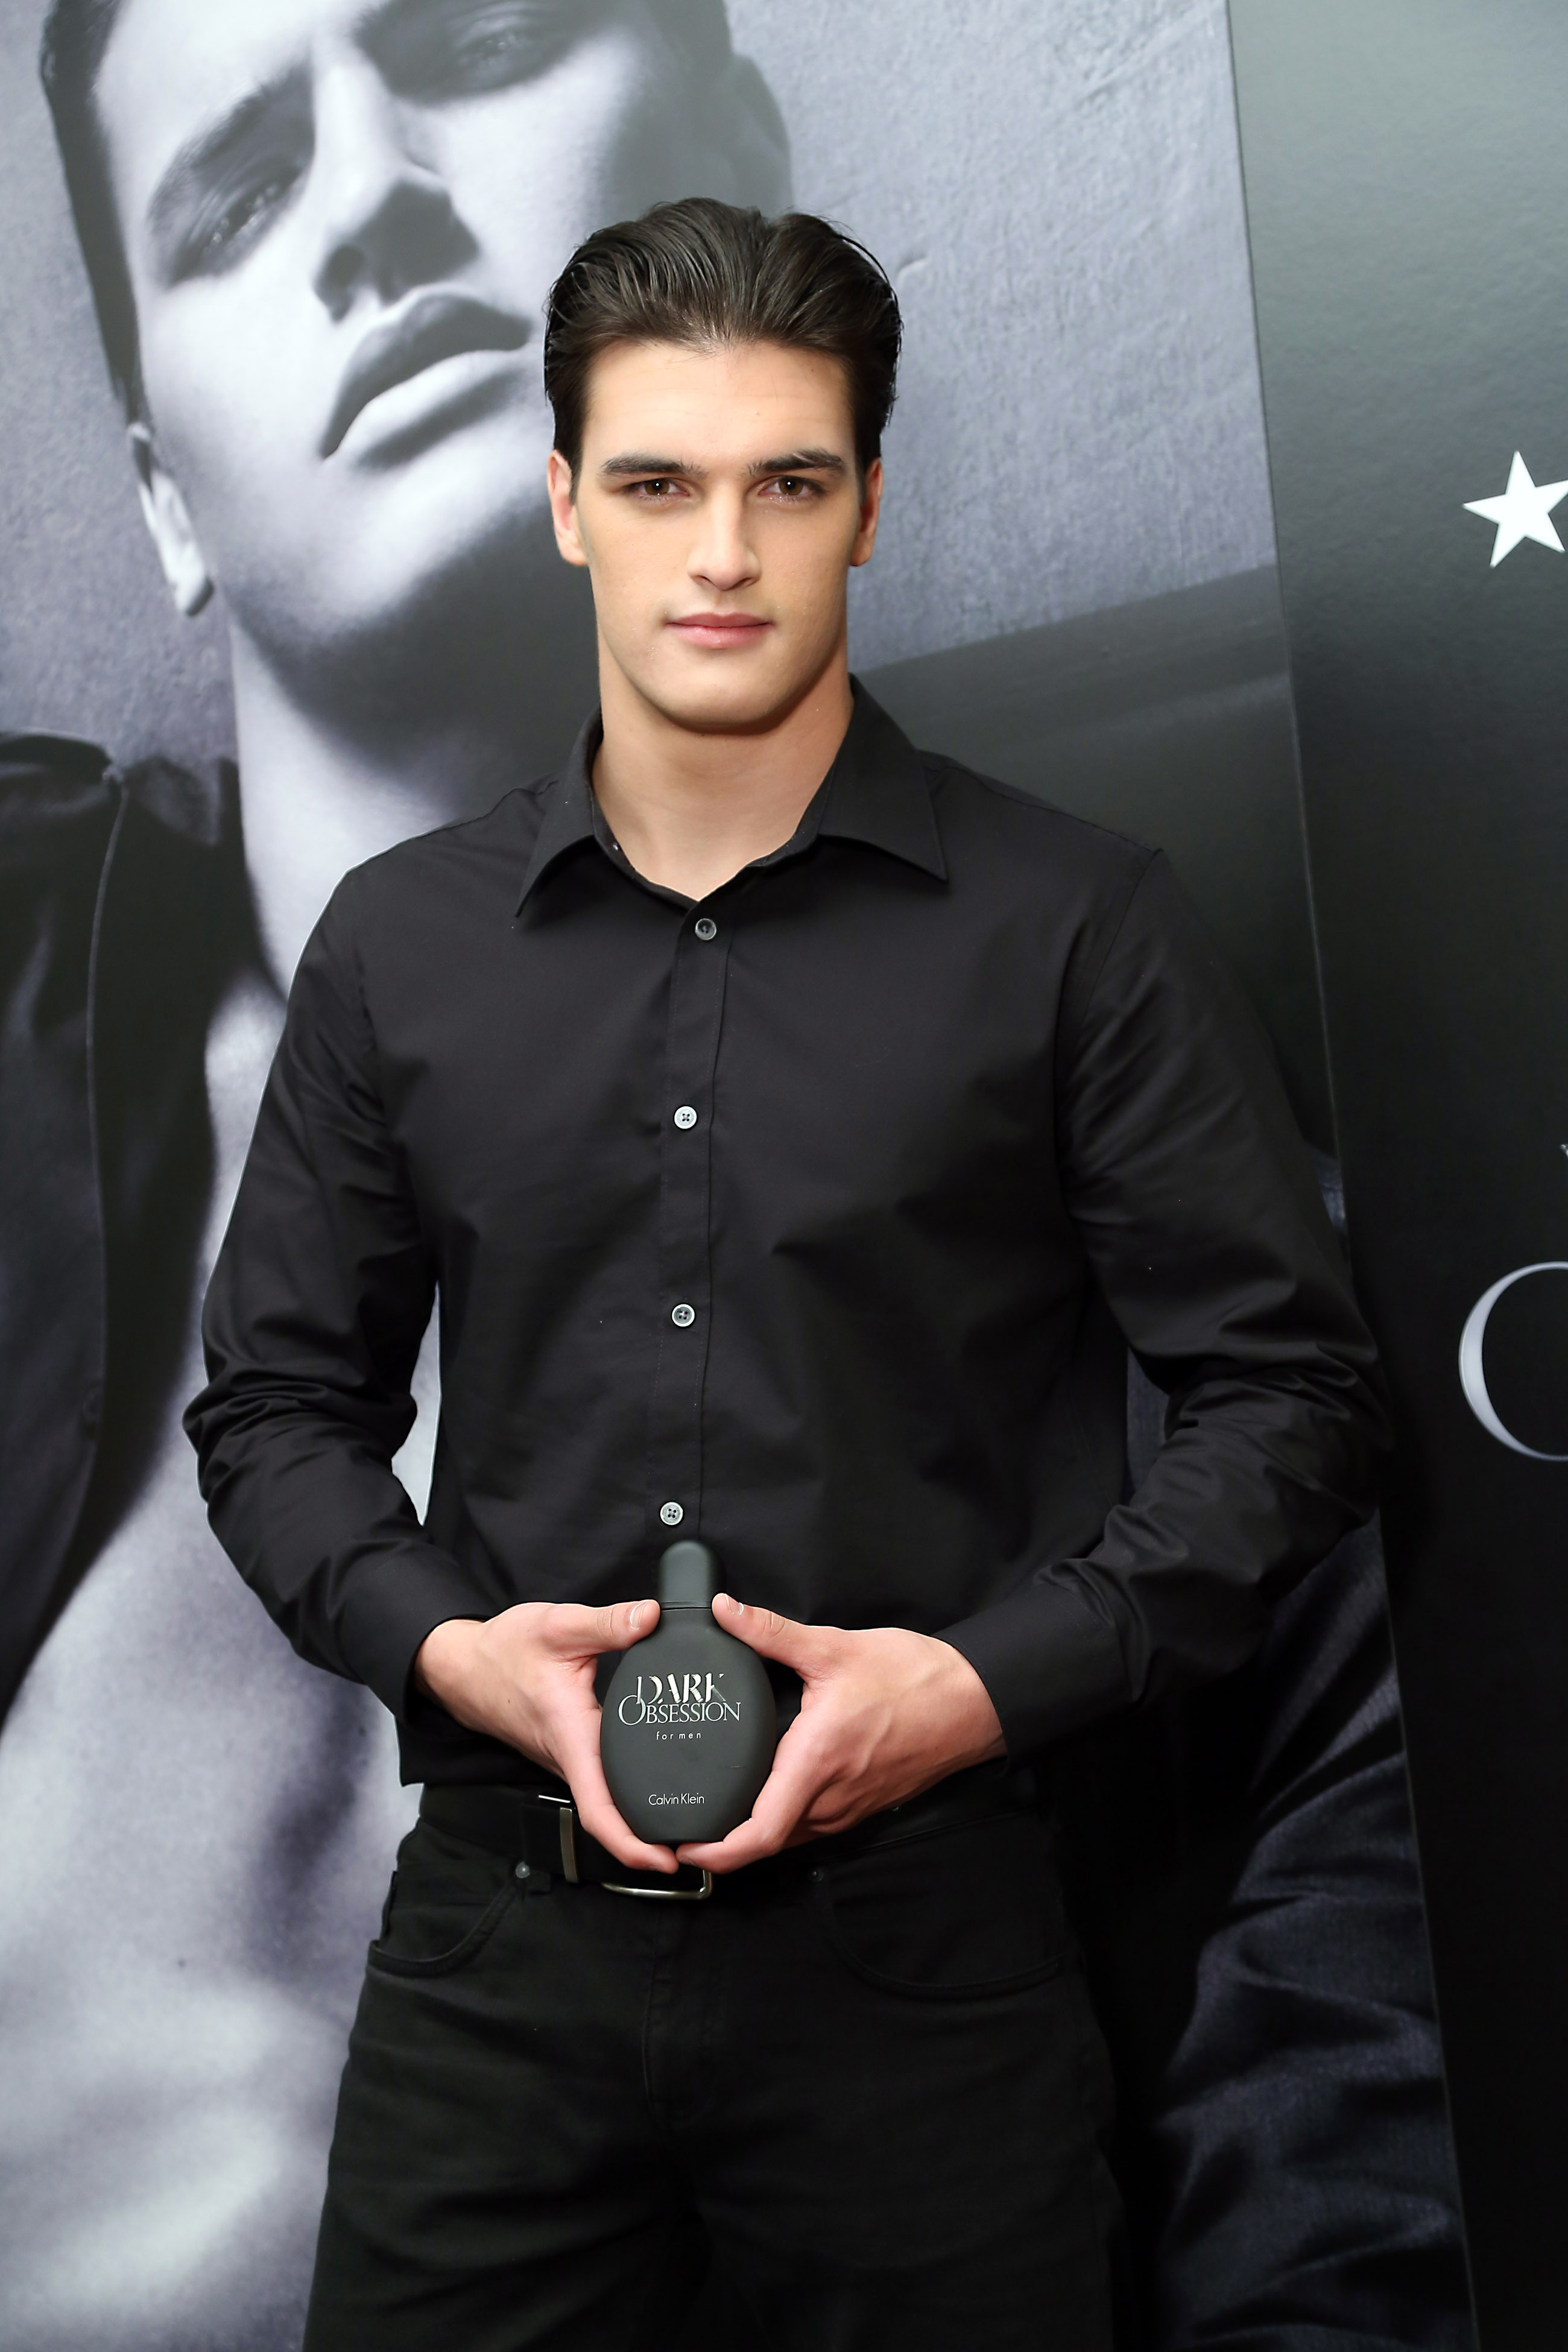 Model Matthew Terry, the face of Calvin Klein's new fragrance, DARK OBSESSION for men, at a meet-and-greet at Macy's Dadeland in Miami April 12.